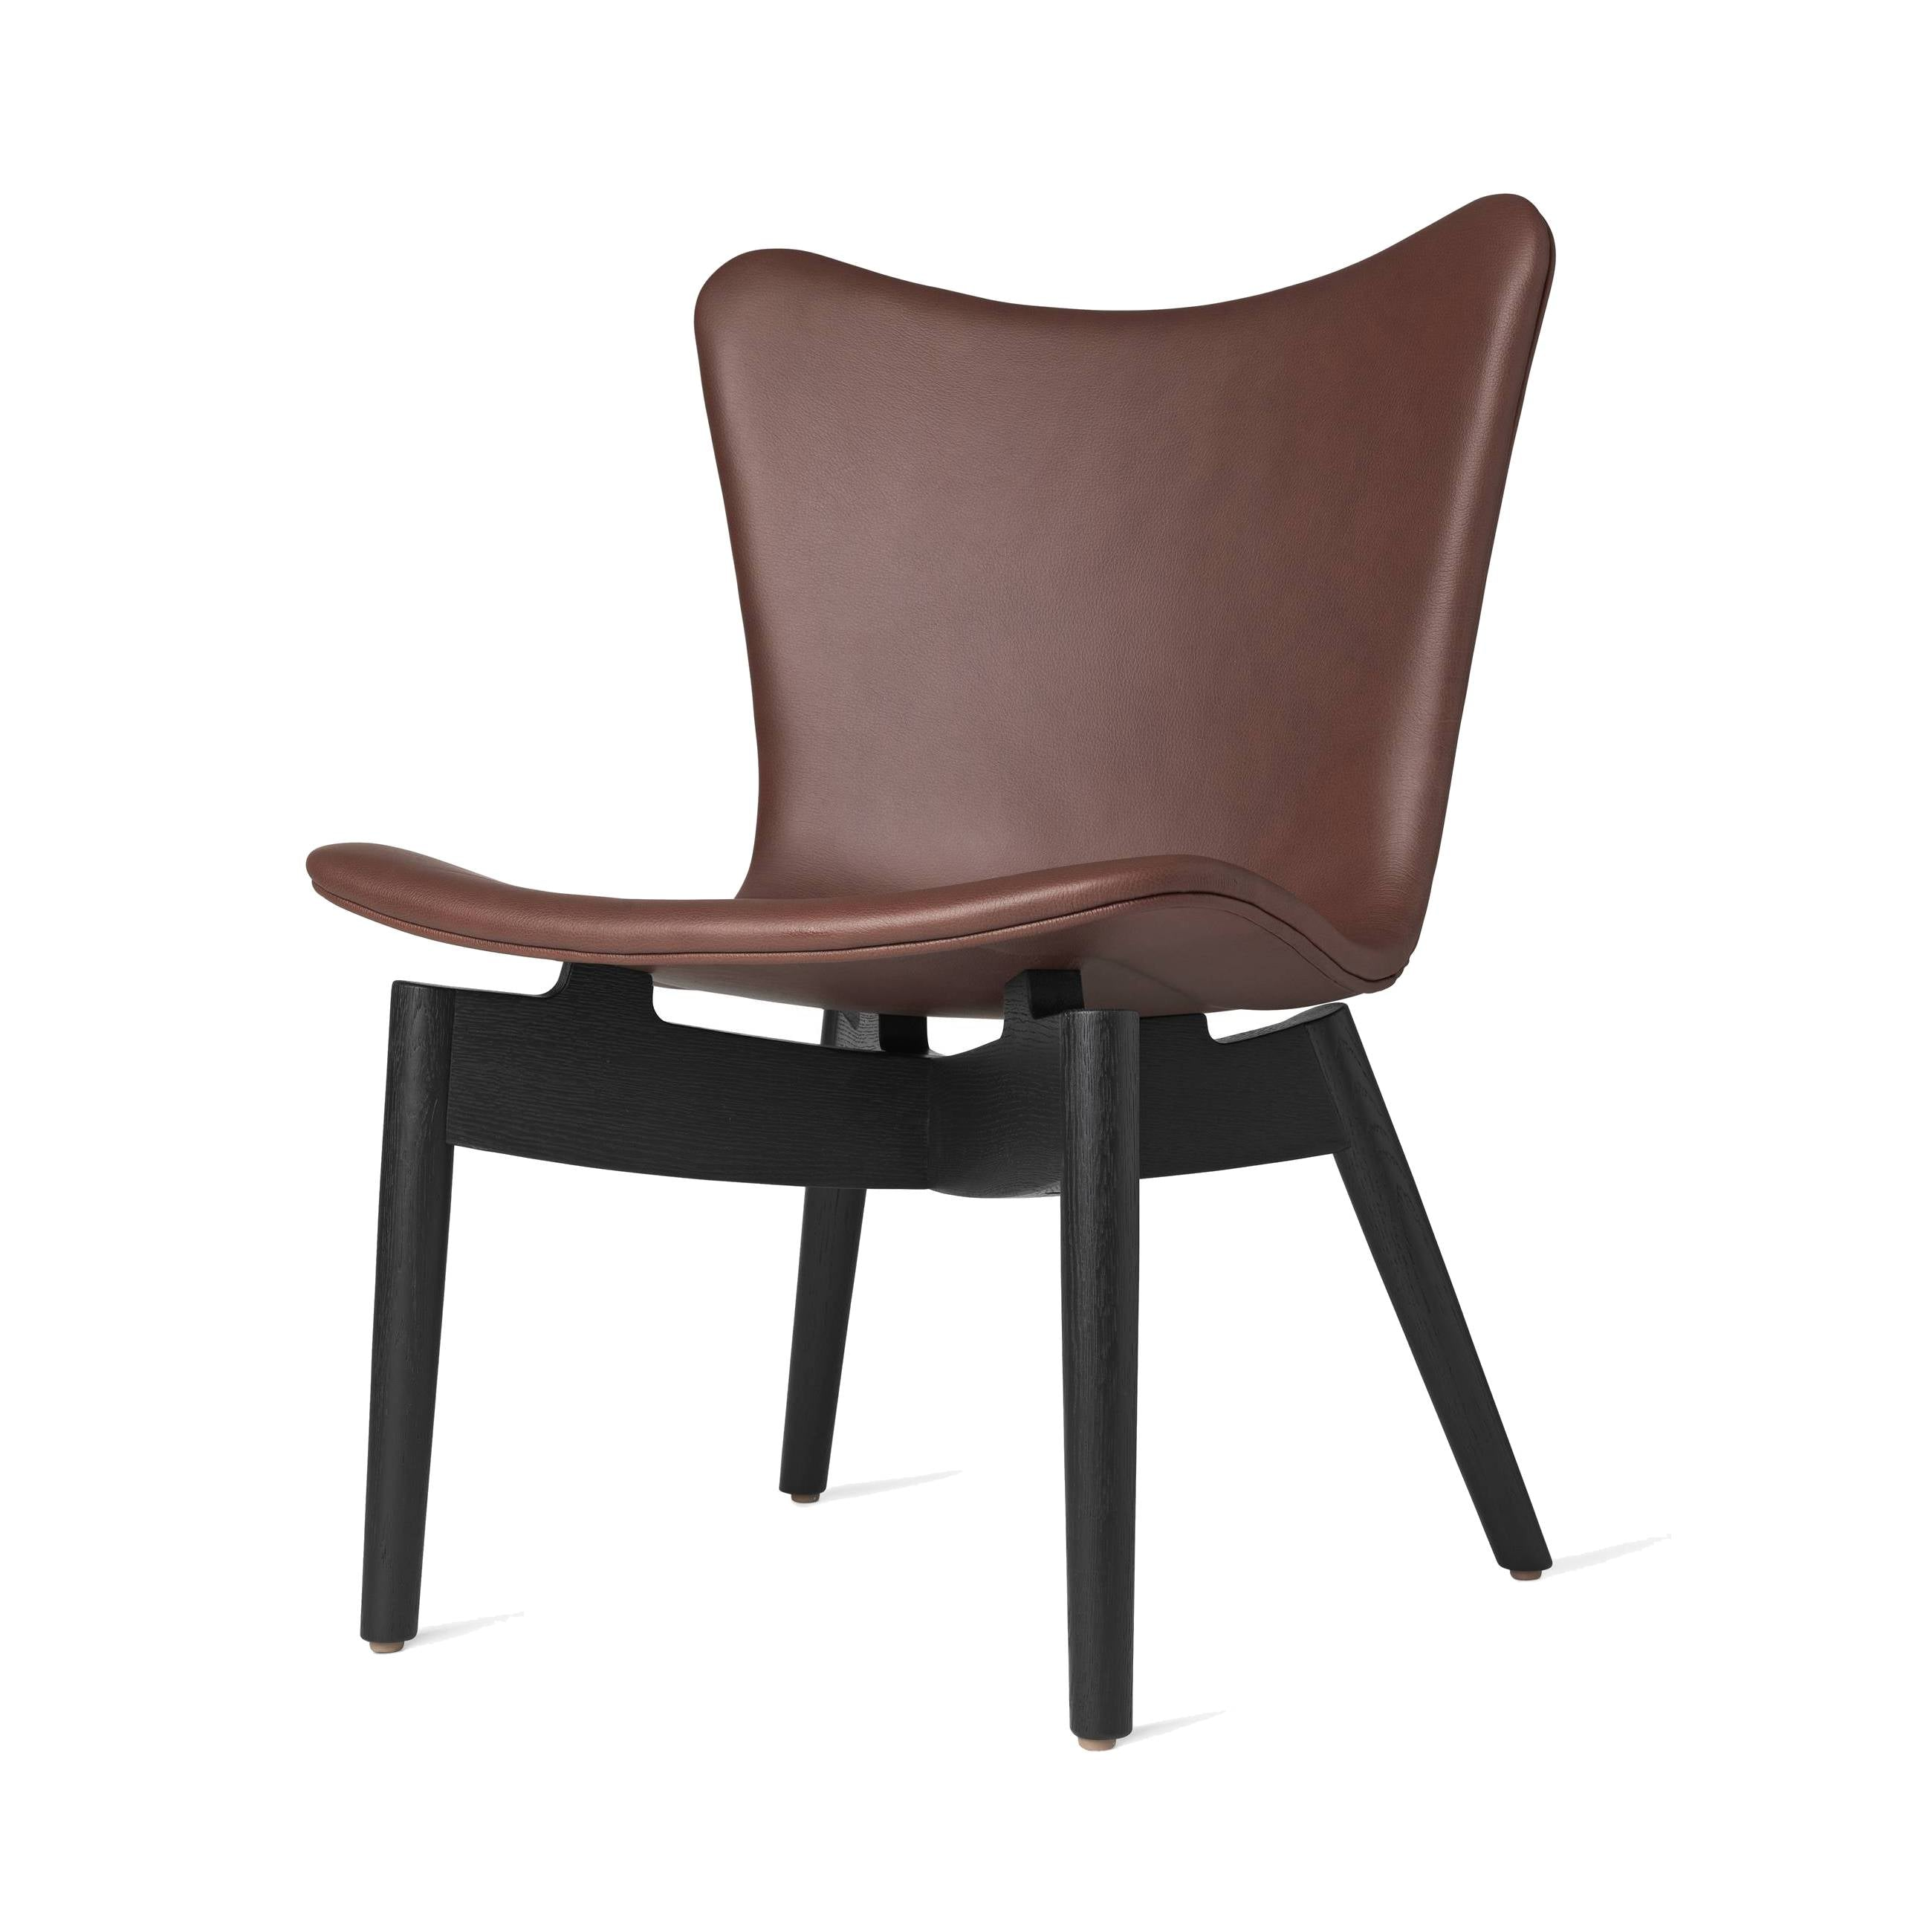 Shell Lounge Chair: Ultra Cognac Leather + Black Stained Oak